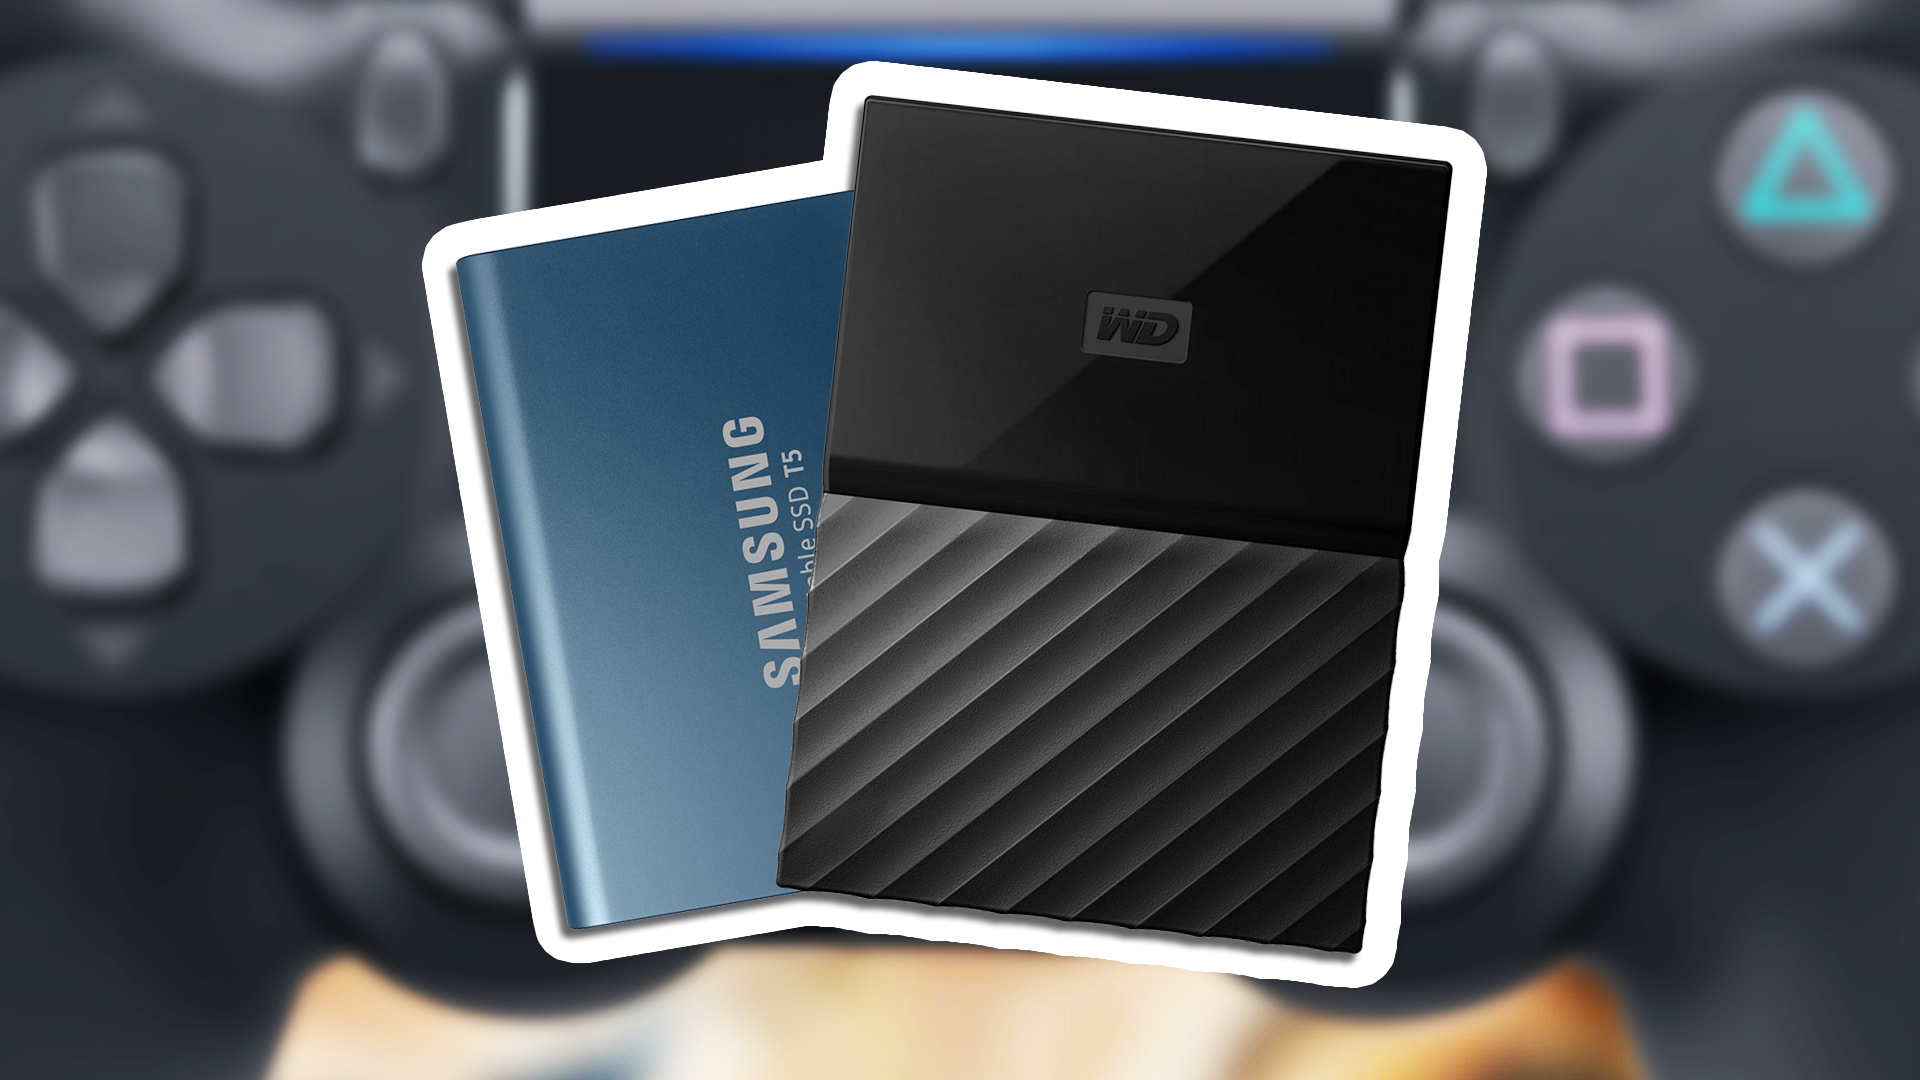 Best PS4 External Hard Drive Upgrades in 2019 - Guide - Push